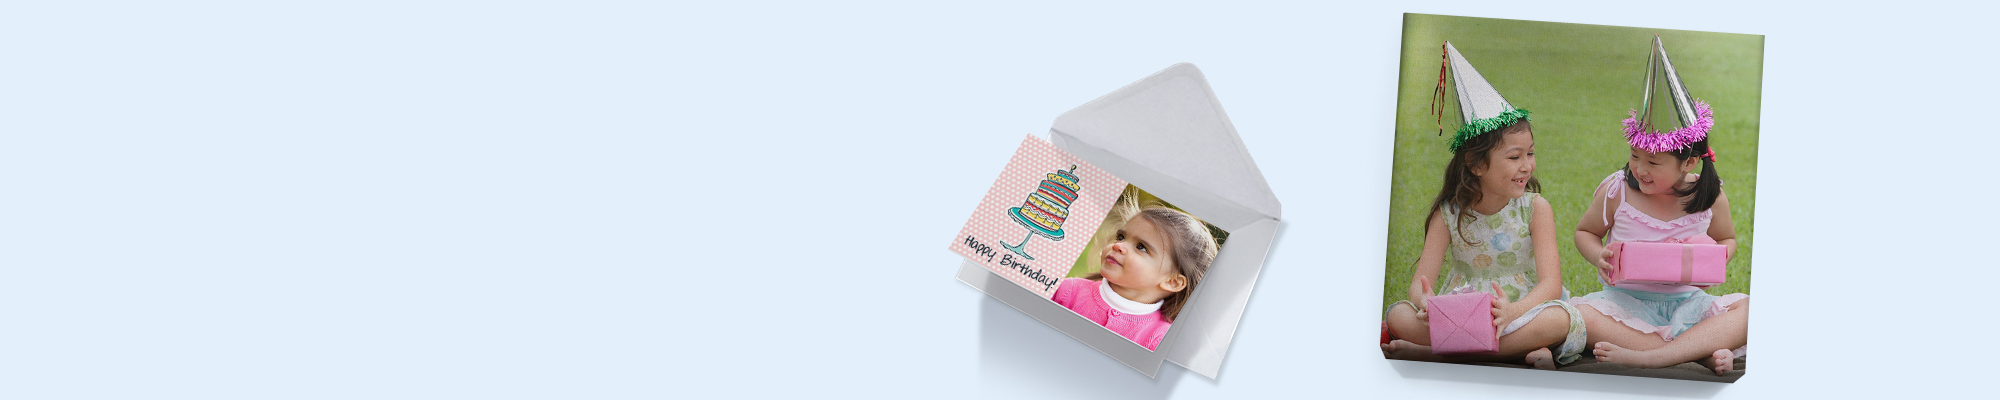 Birthdays Whether turning 1 or 101 a birthday is a cause for celebration - treat your loved ones to personalised gifts